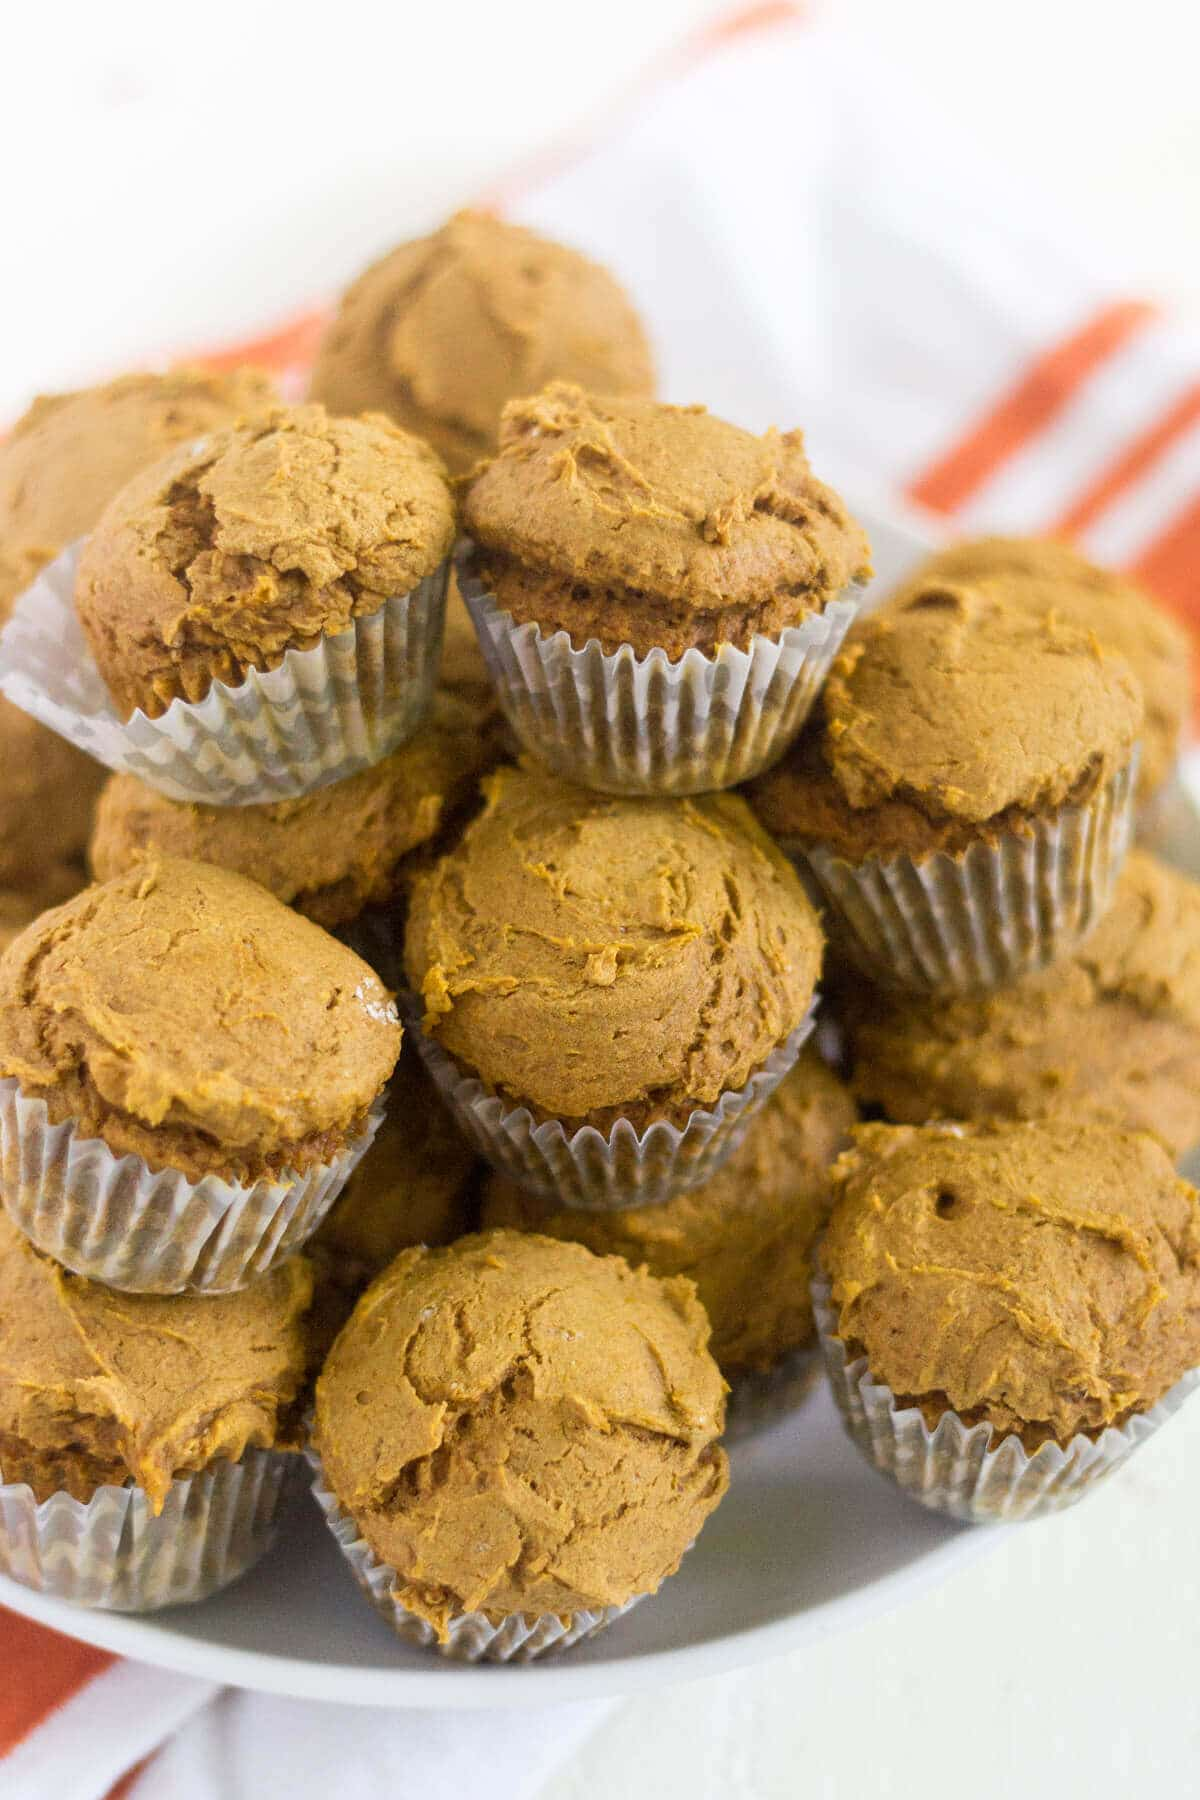 With only two ingredients, these mini pumpkin muffins are as easy as they come. Plus they're only 45 calories each! They're made without oil and eggs and they're so soft and filled with pumpkin spice flavor.